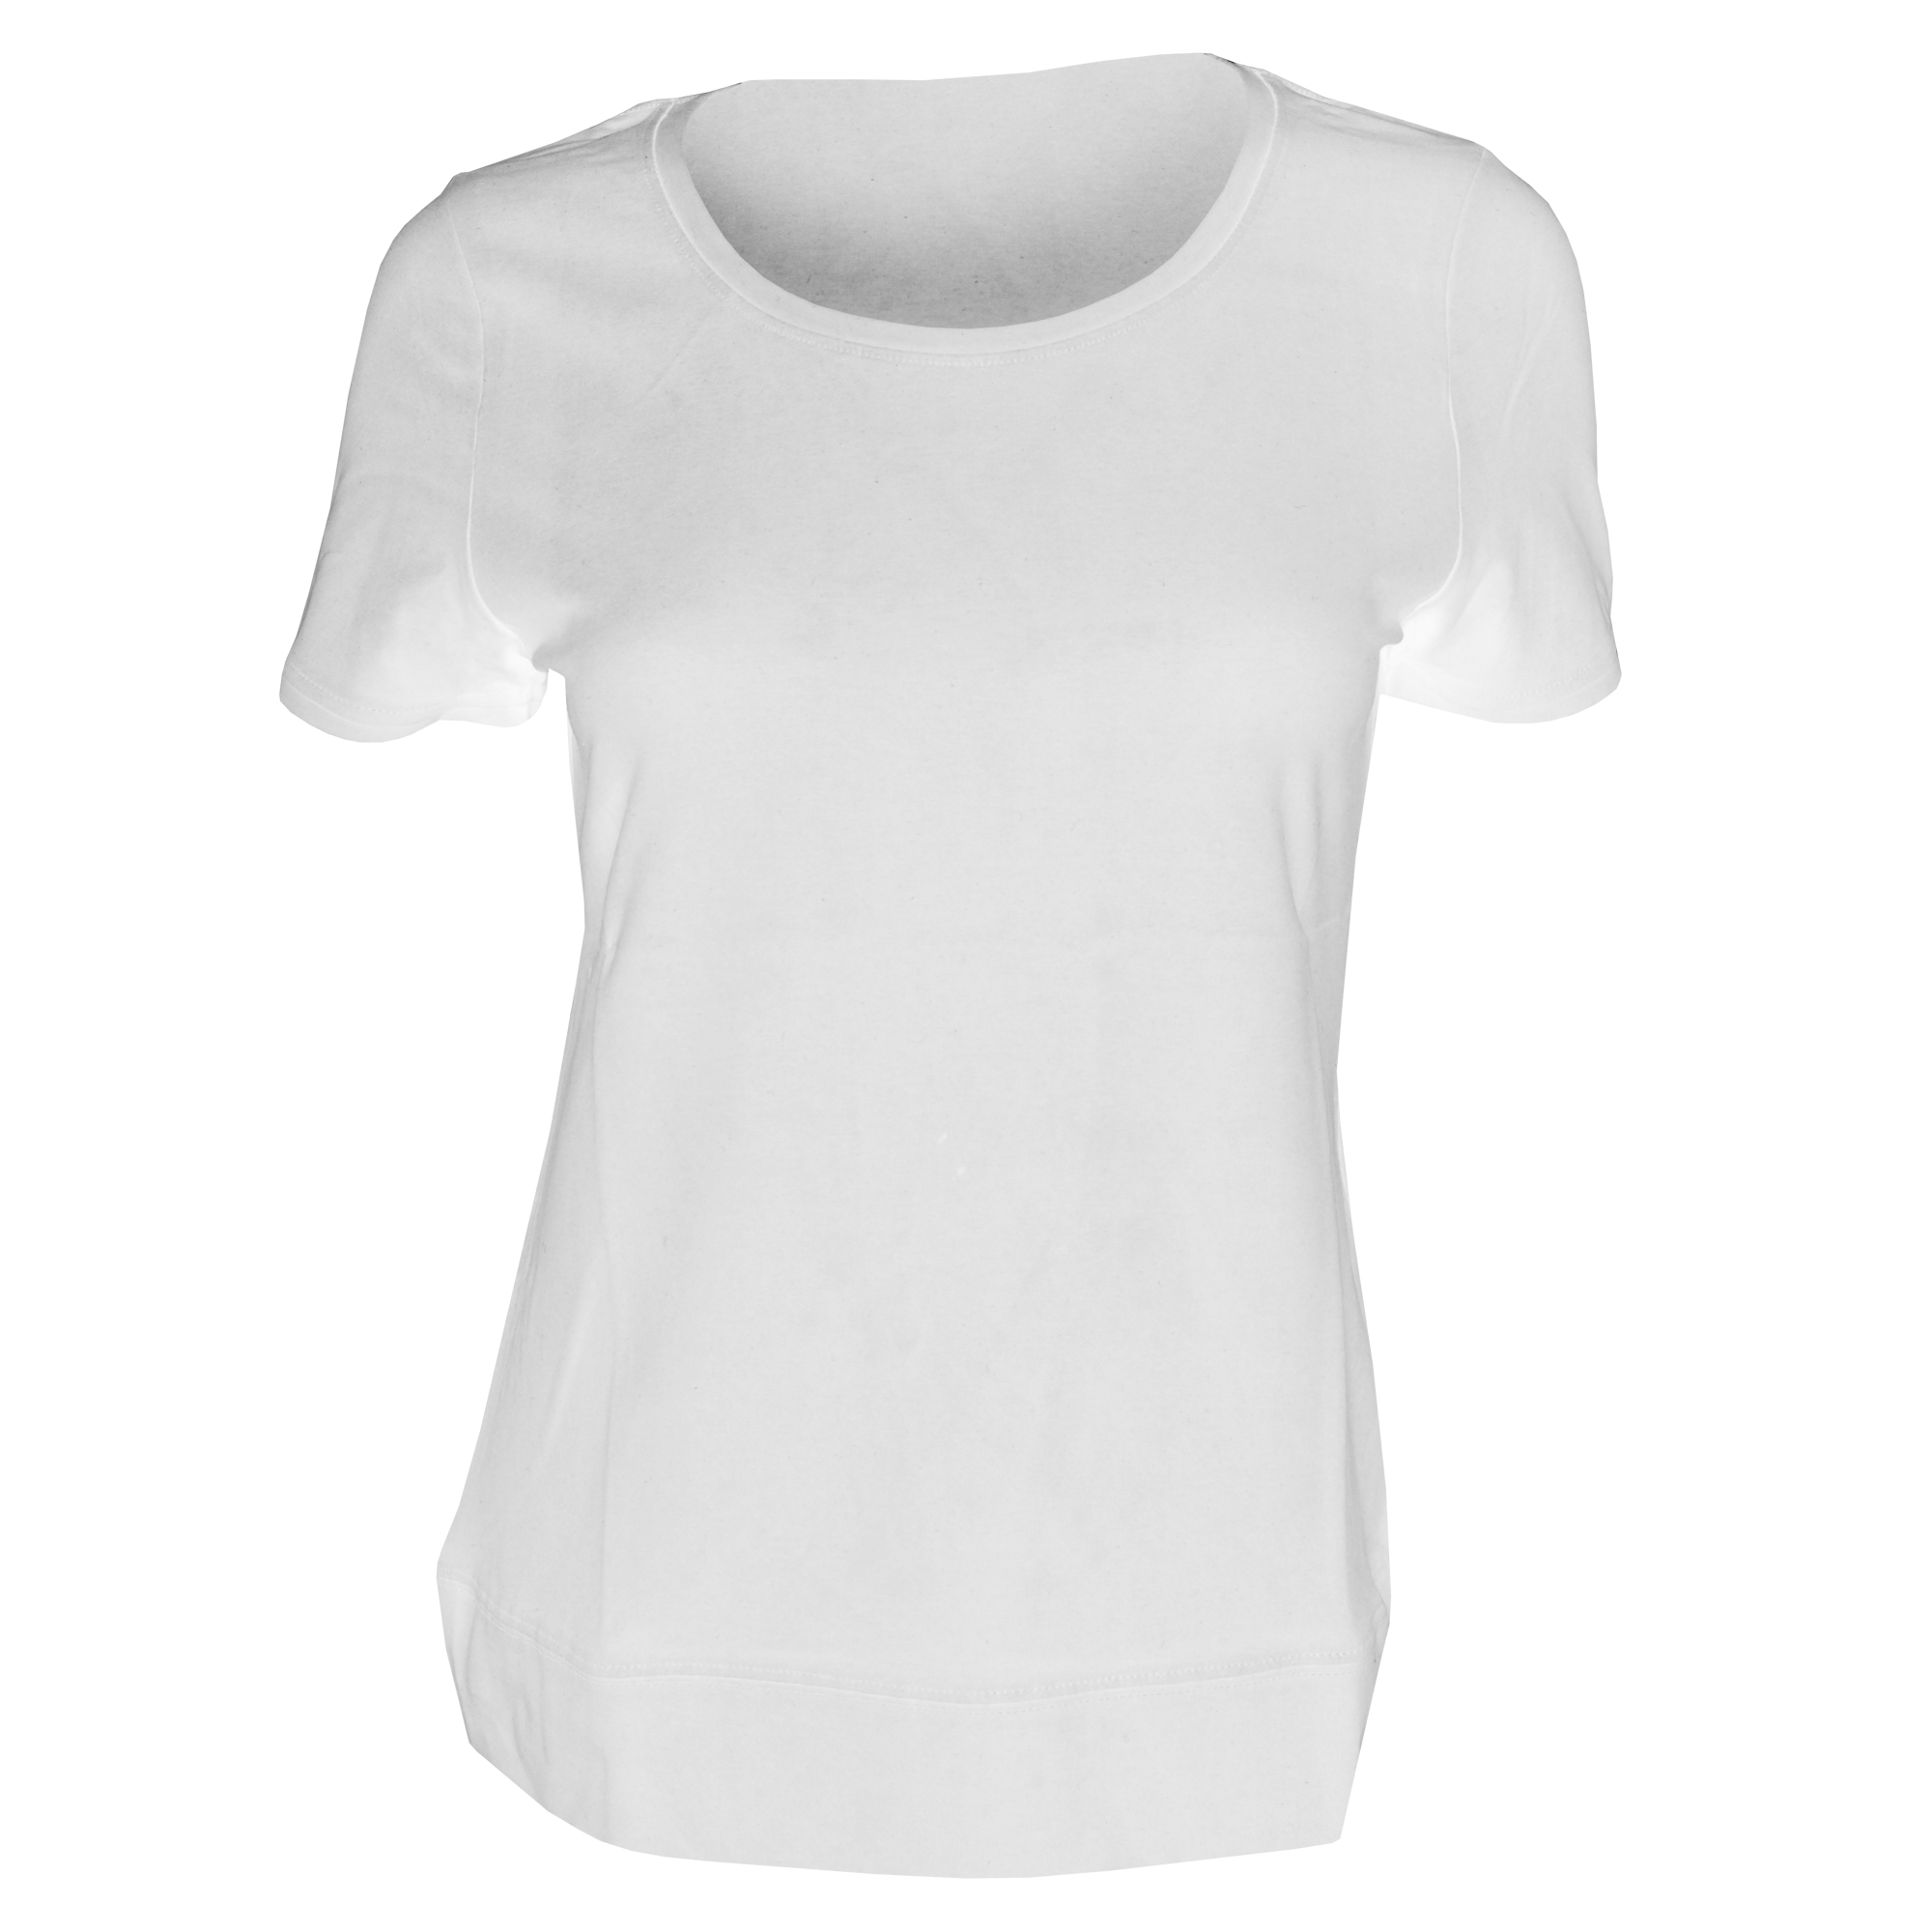 Russell Collection Ladies//Womens Short Sleeve Strech Top BC1041